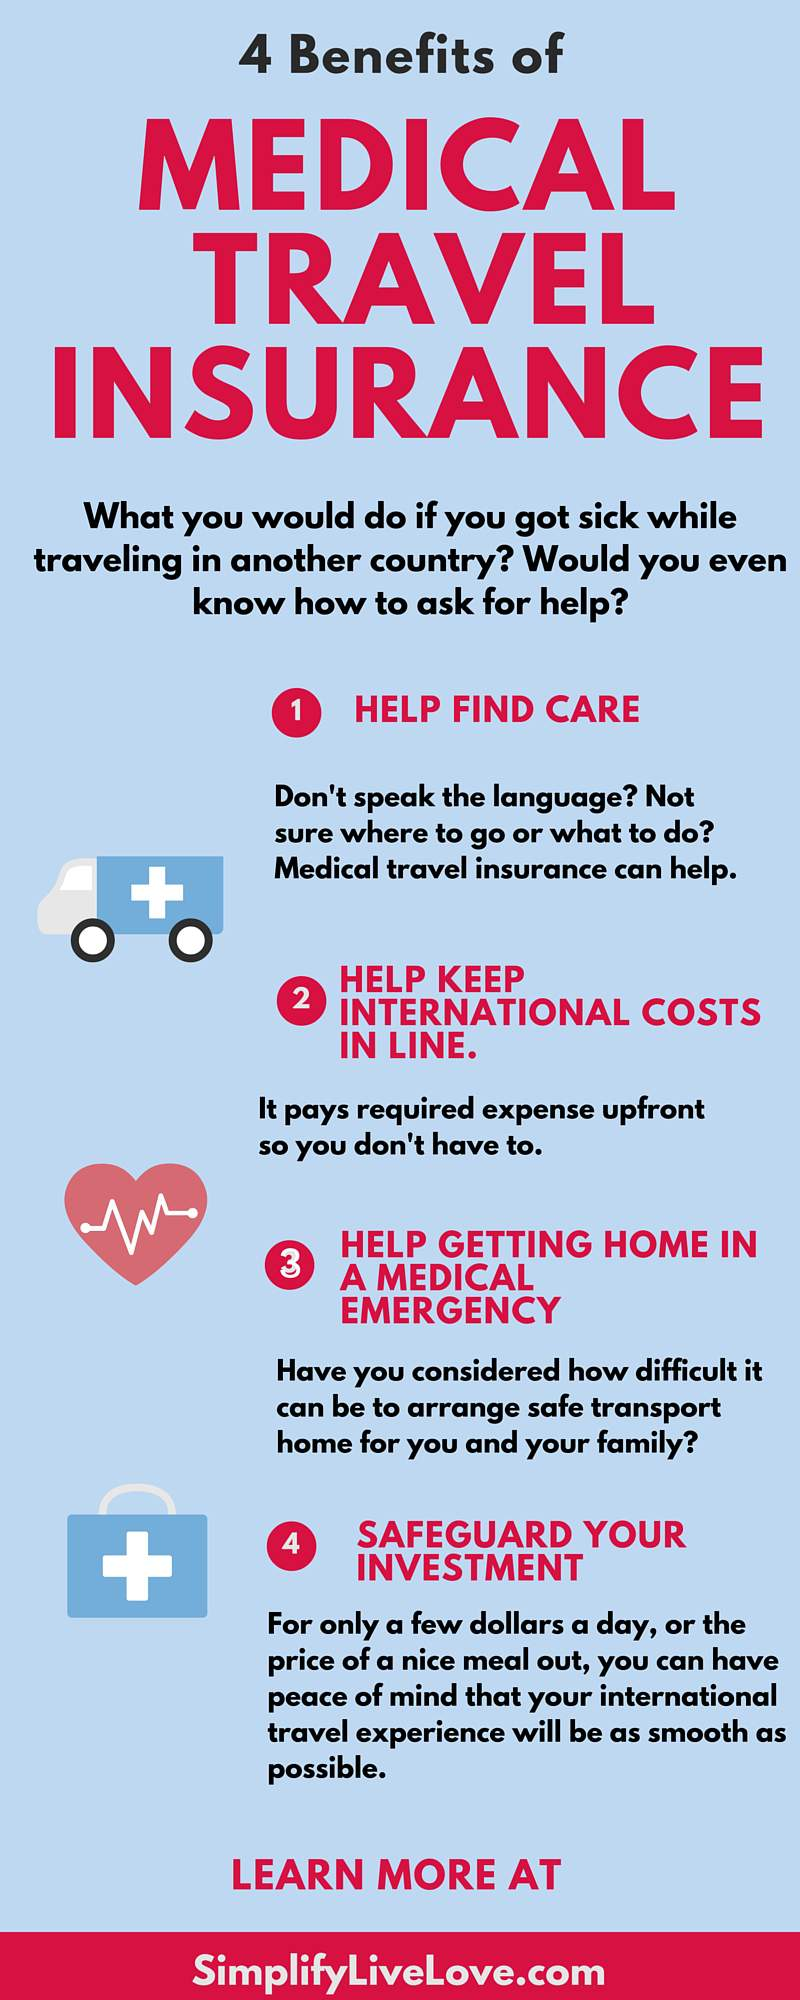 Why You might consider medical travel insurance for international travel